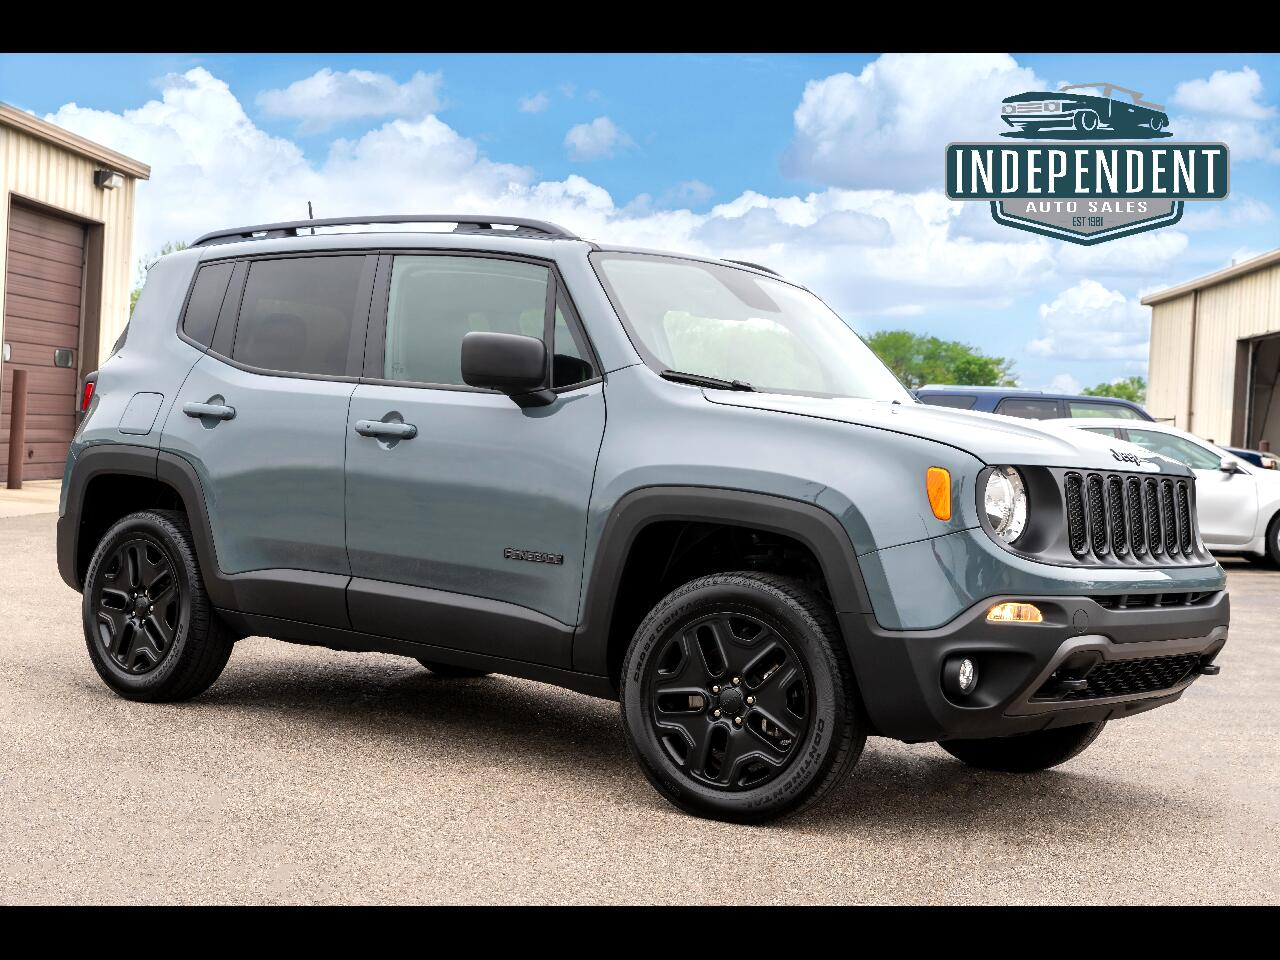 2018 Jeep Renegade Upland Edition 4x4